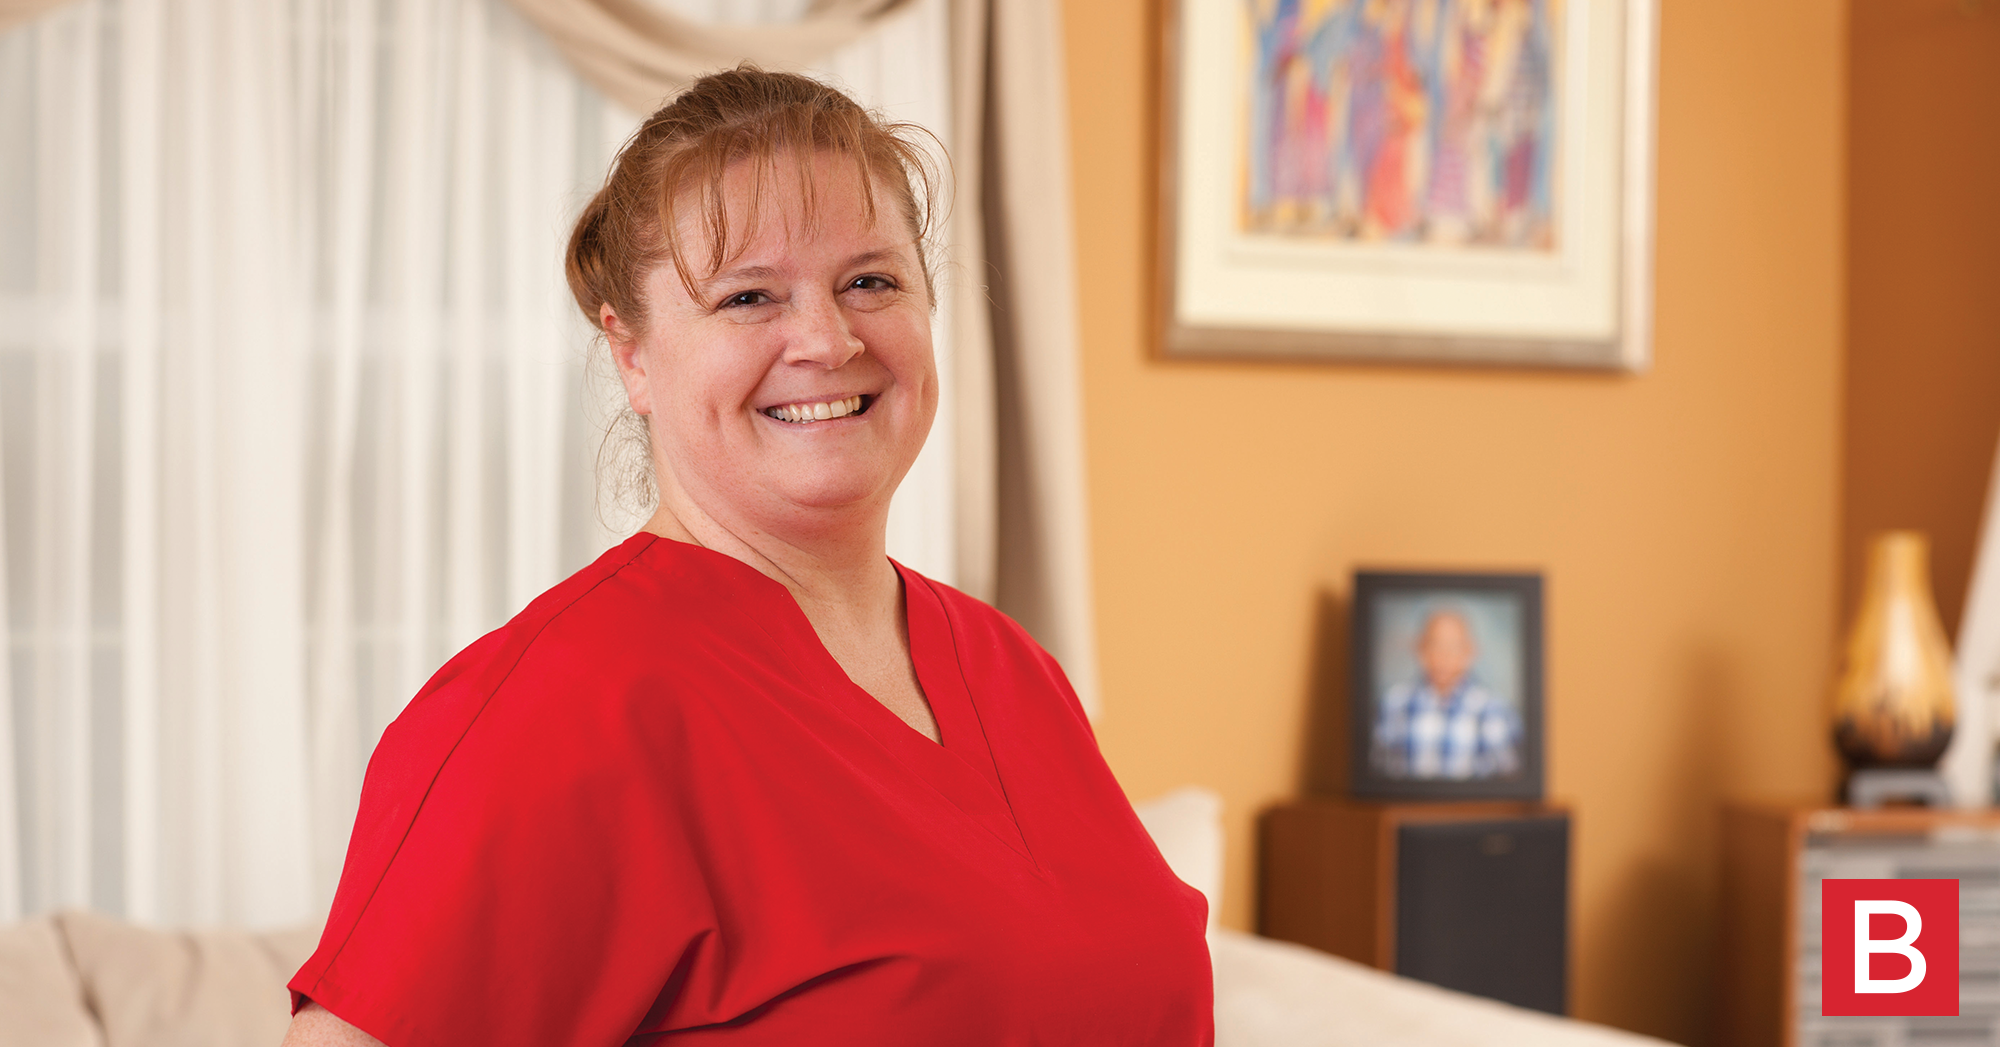 LPNs Are in Demand! Exciting Nursing Opportunities Are Within Your Reach